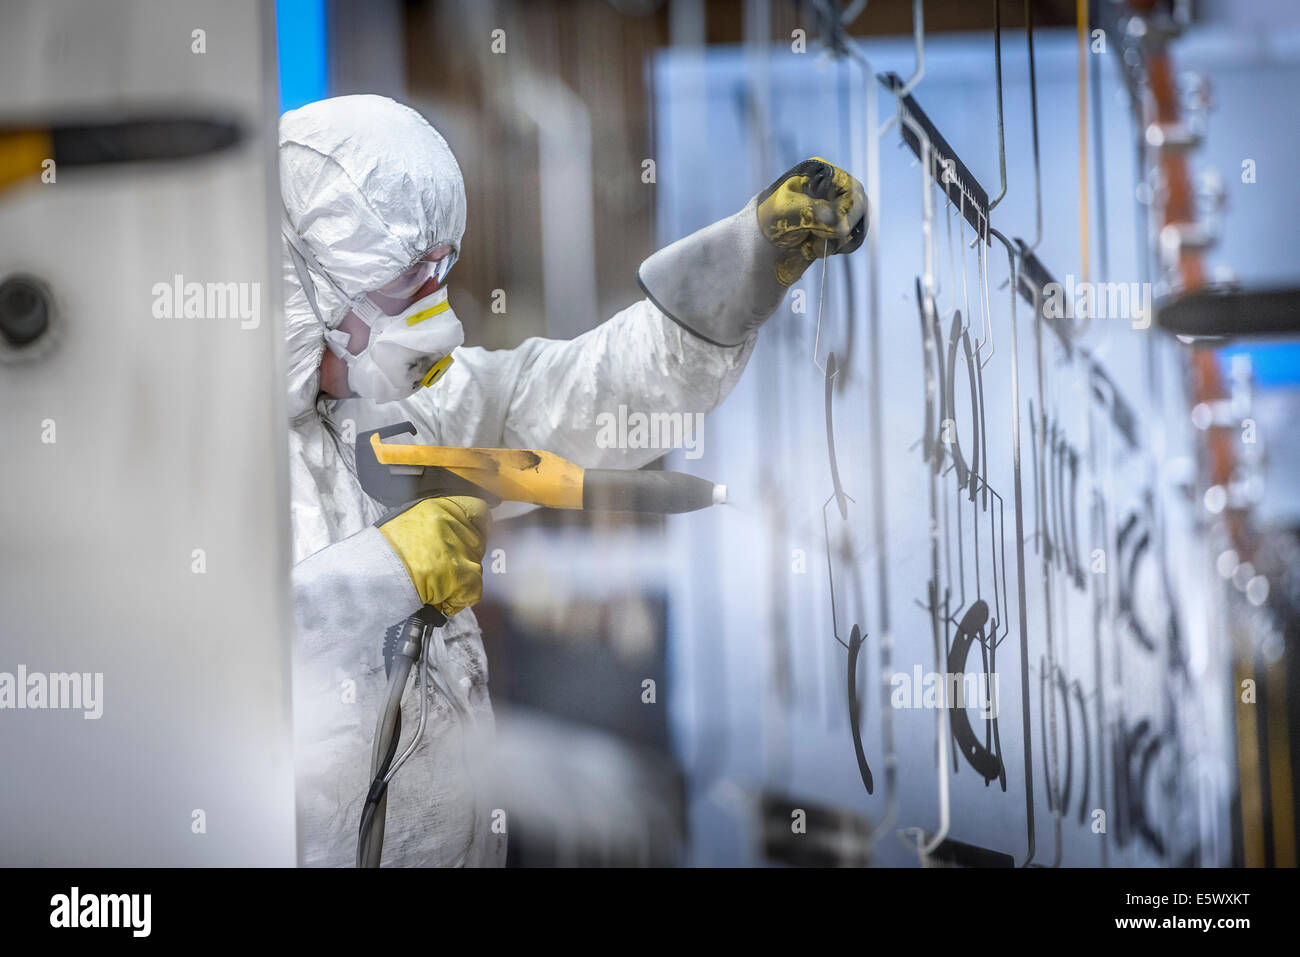 Worker Powder Coating Parts In Paint Spray Booth In Sheet